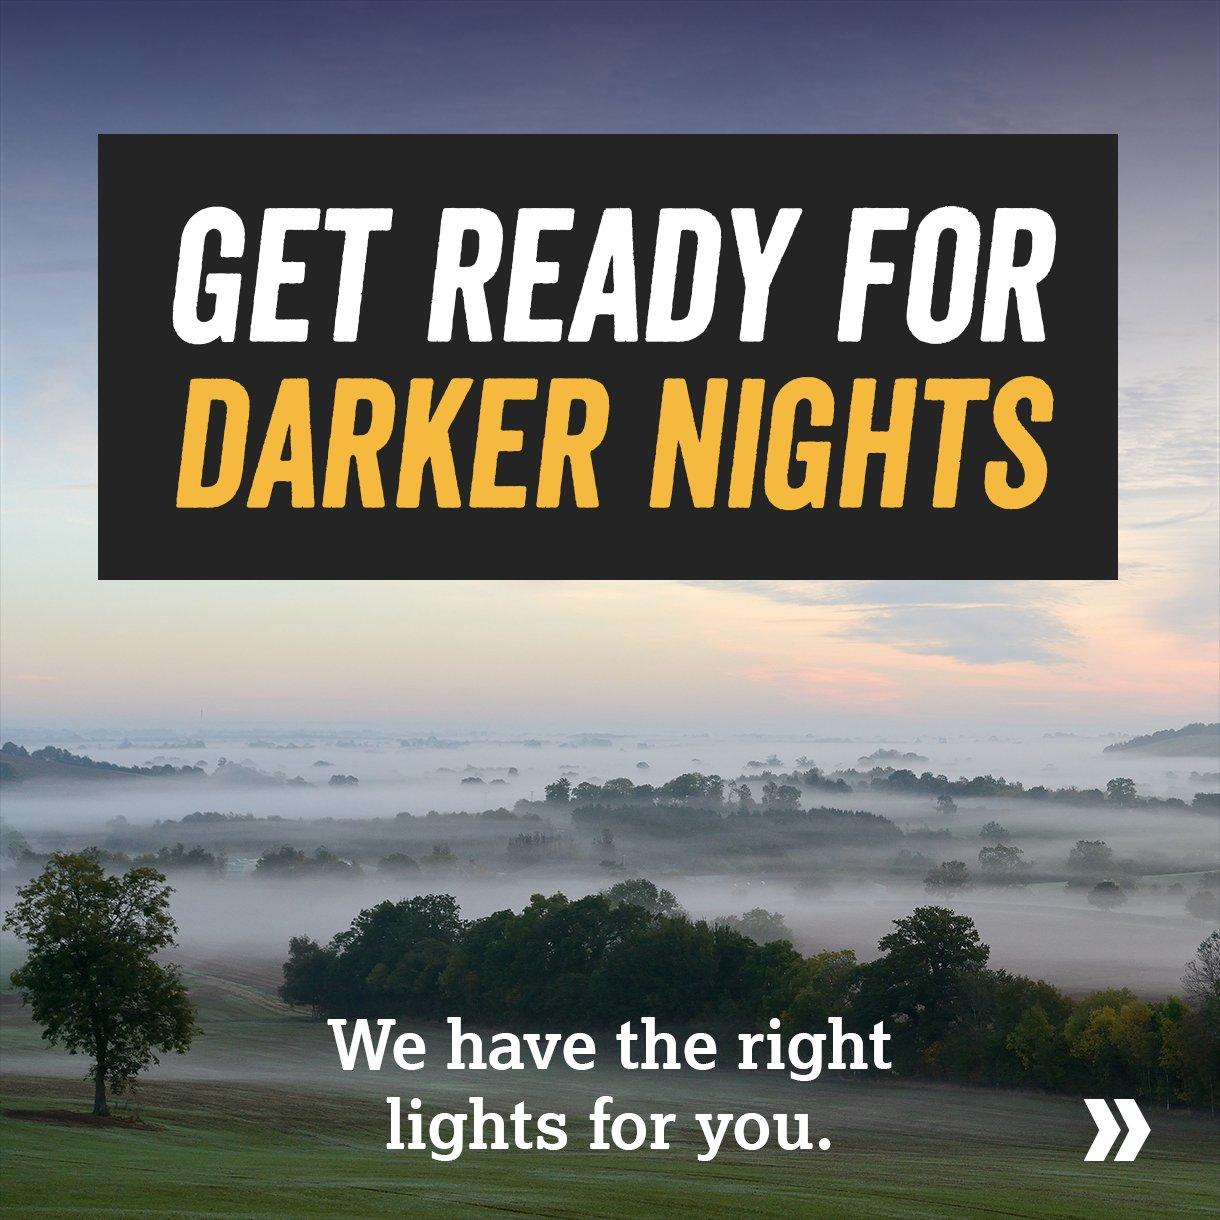 Get Ready for Darker Nights